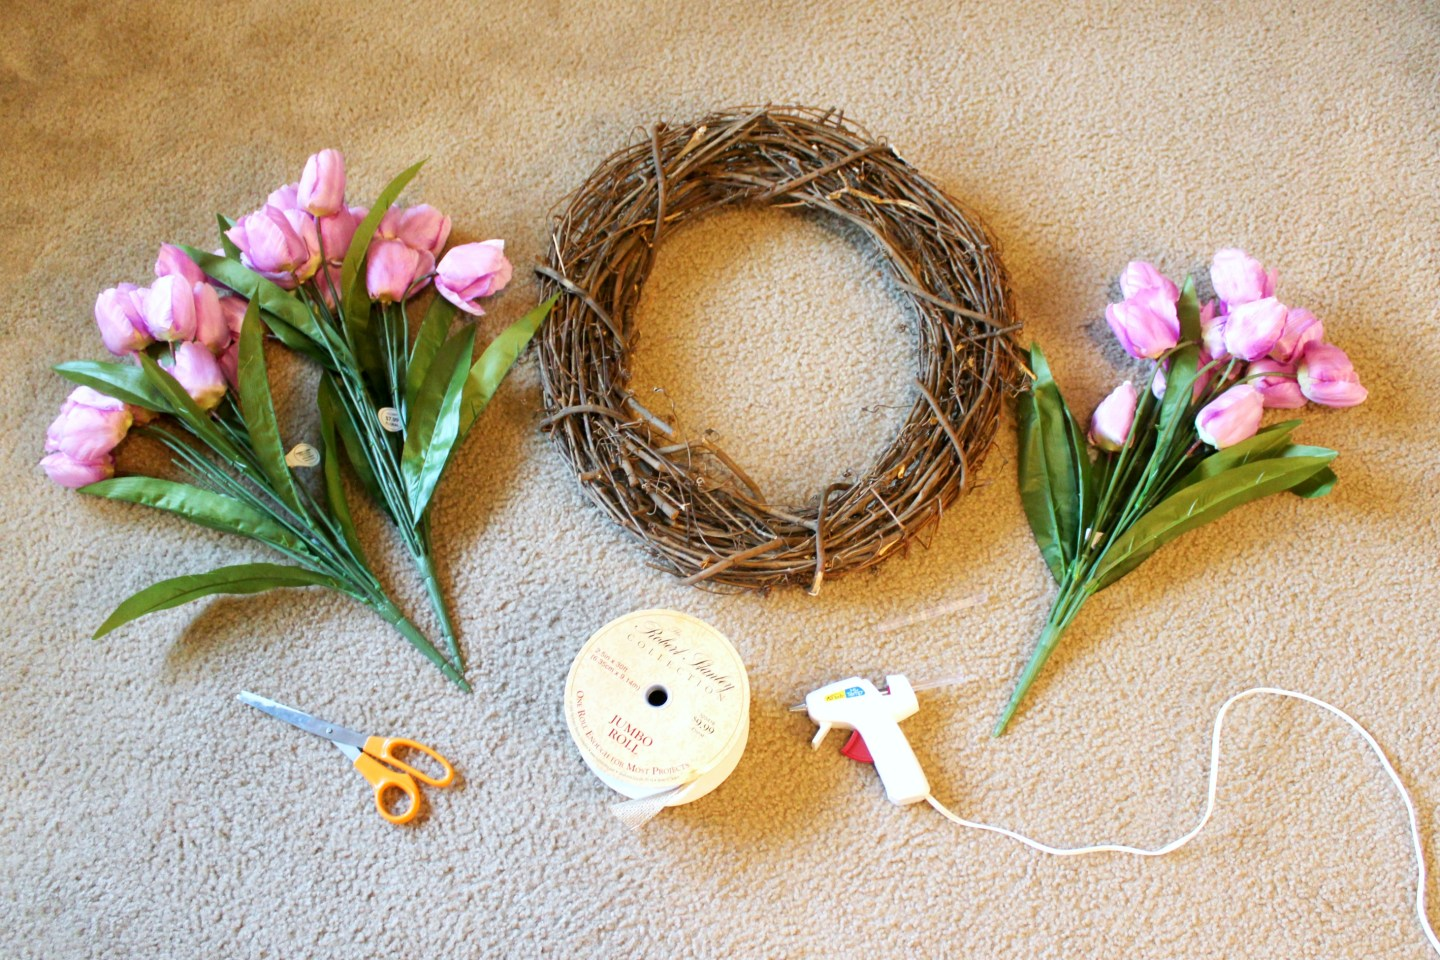 how to make a spring wreath - gather your supplies